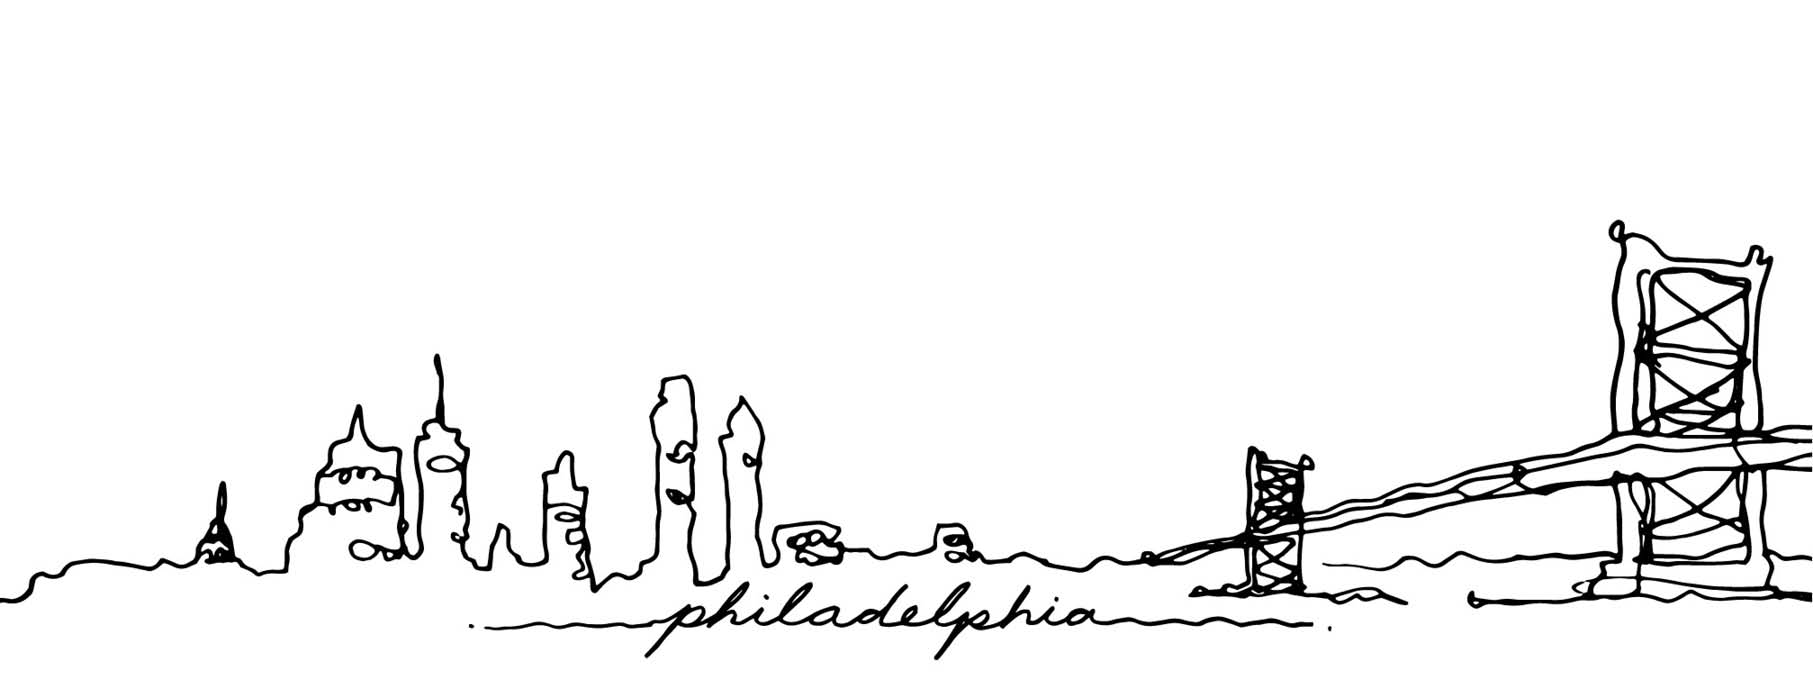 Philadelphia Cityscapes Collection